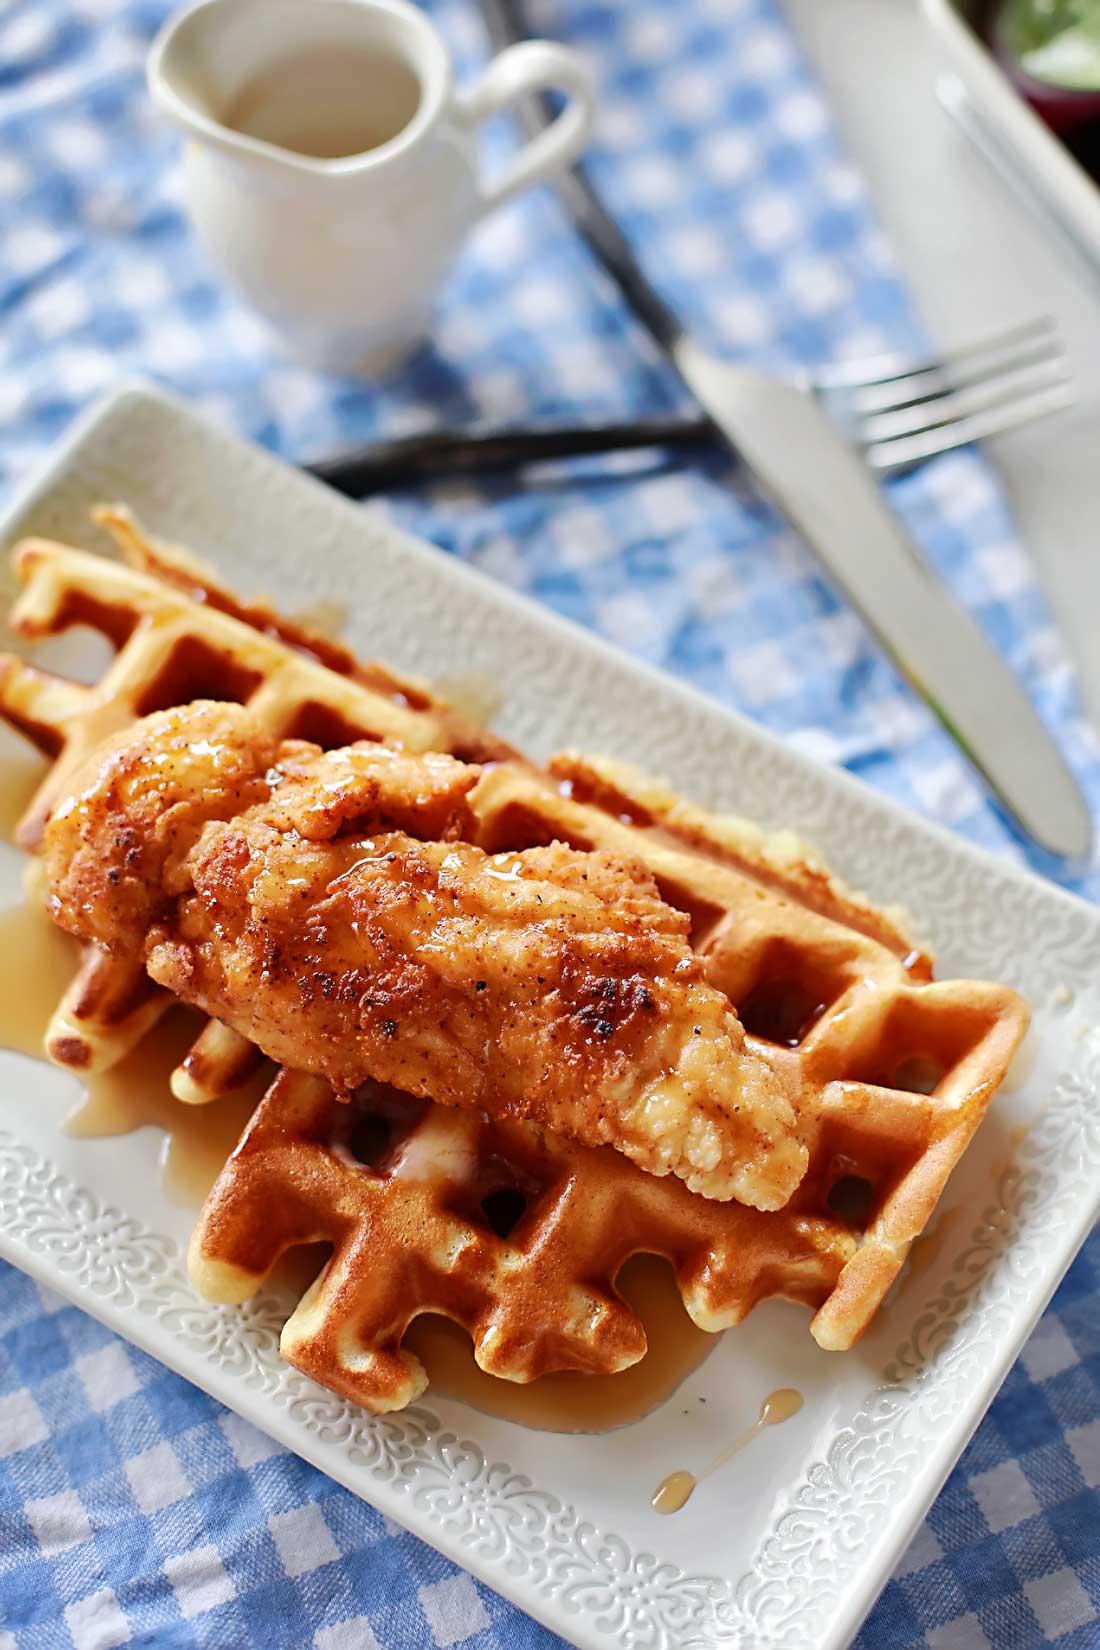 Fried chicken and waffles by Flirting with Flavor